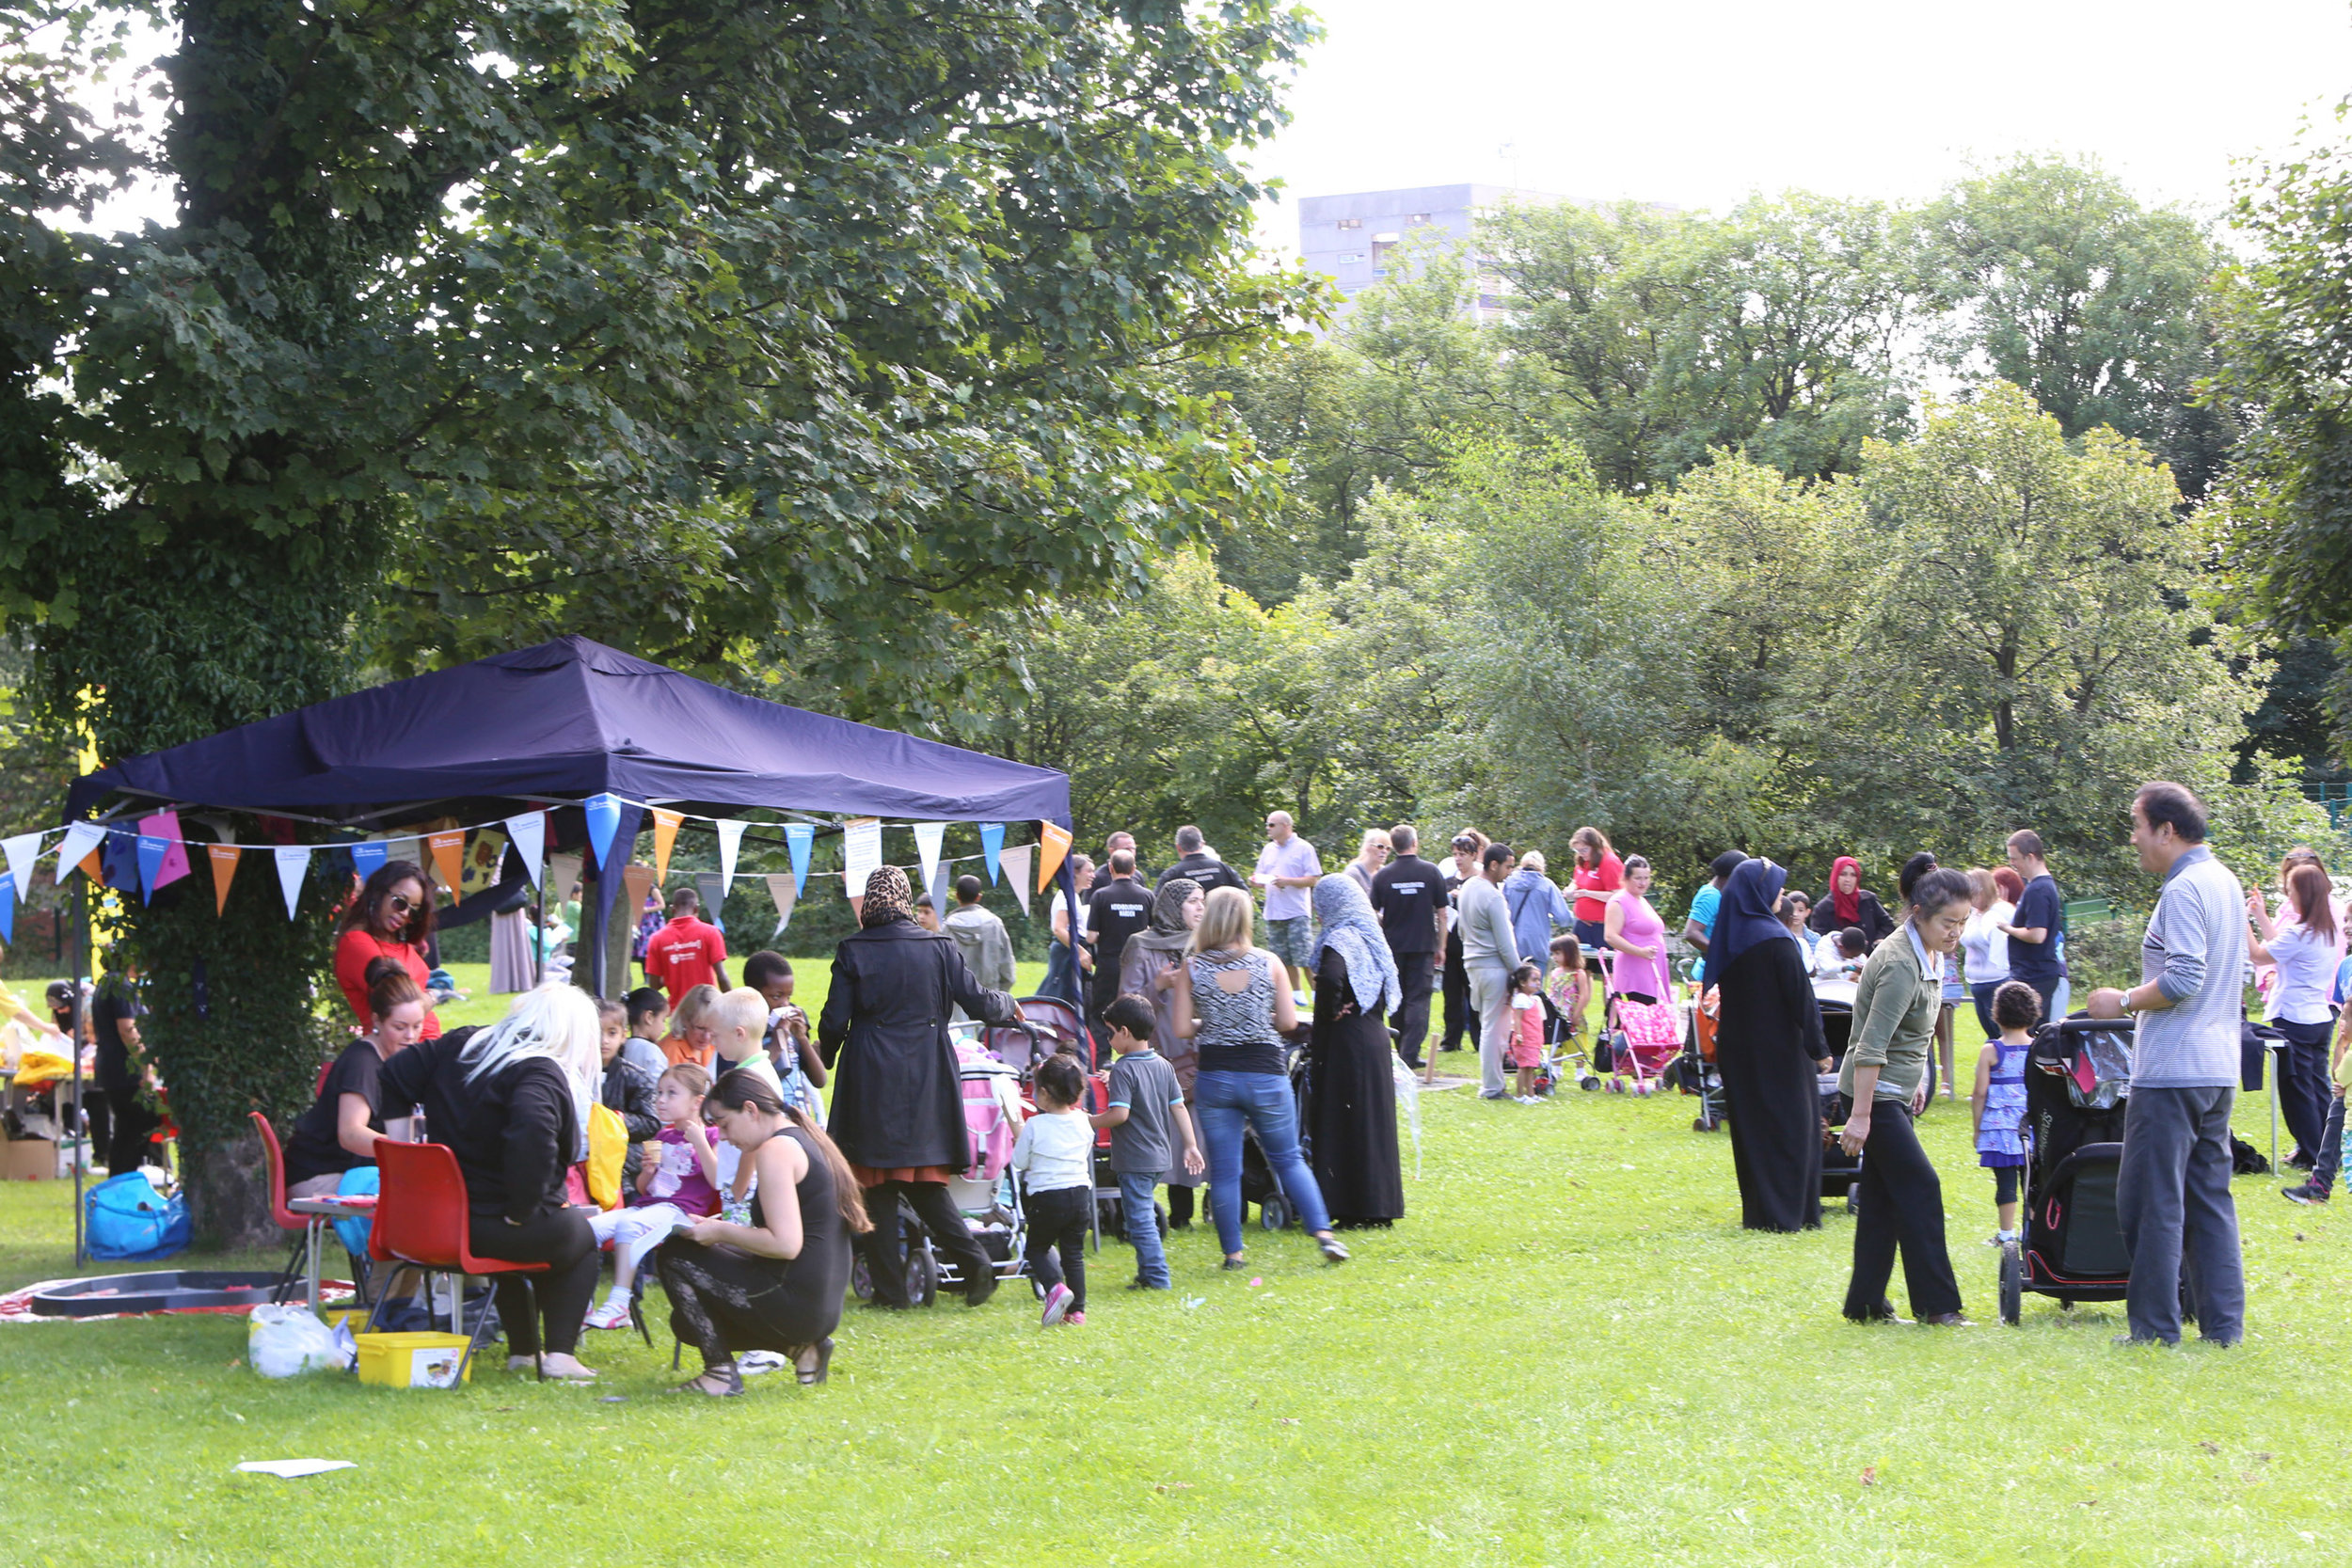 Saturday 9th September- A date for the diary! - We can't wait until our End of Summer Celebration event in Elswick Park!When: Saturday 9th September, 11am-1pm. Where: Top of Elswick Park, via the Elswick Road main entranceThere'll be something for the whole family to enjoy! Face painting, art and craft, healthy food, games, stalls, prize drawand other fun healthy activities!Help us spread the word!